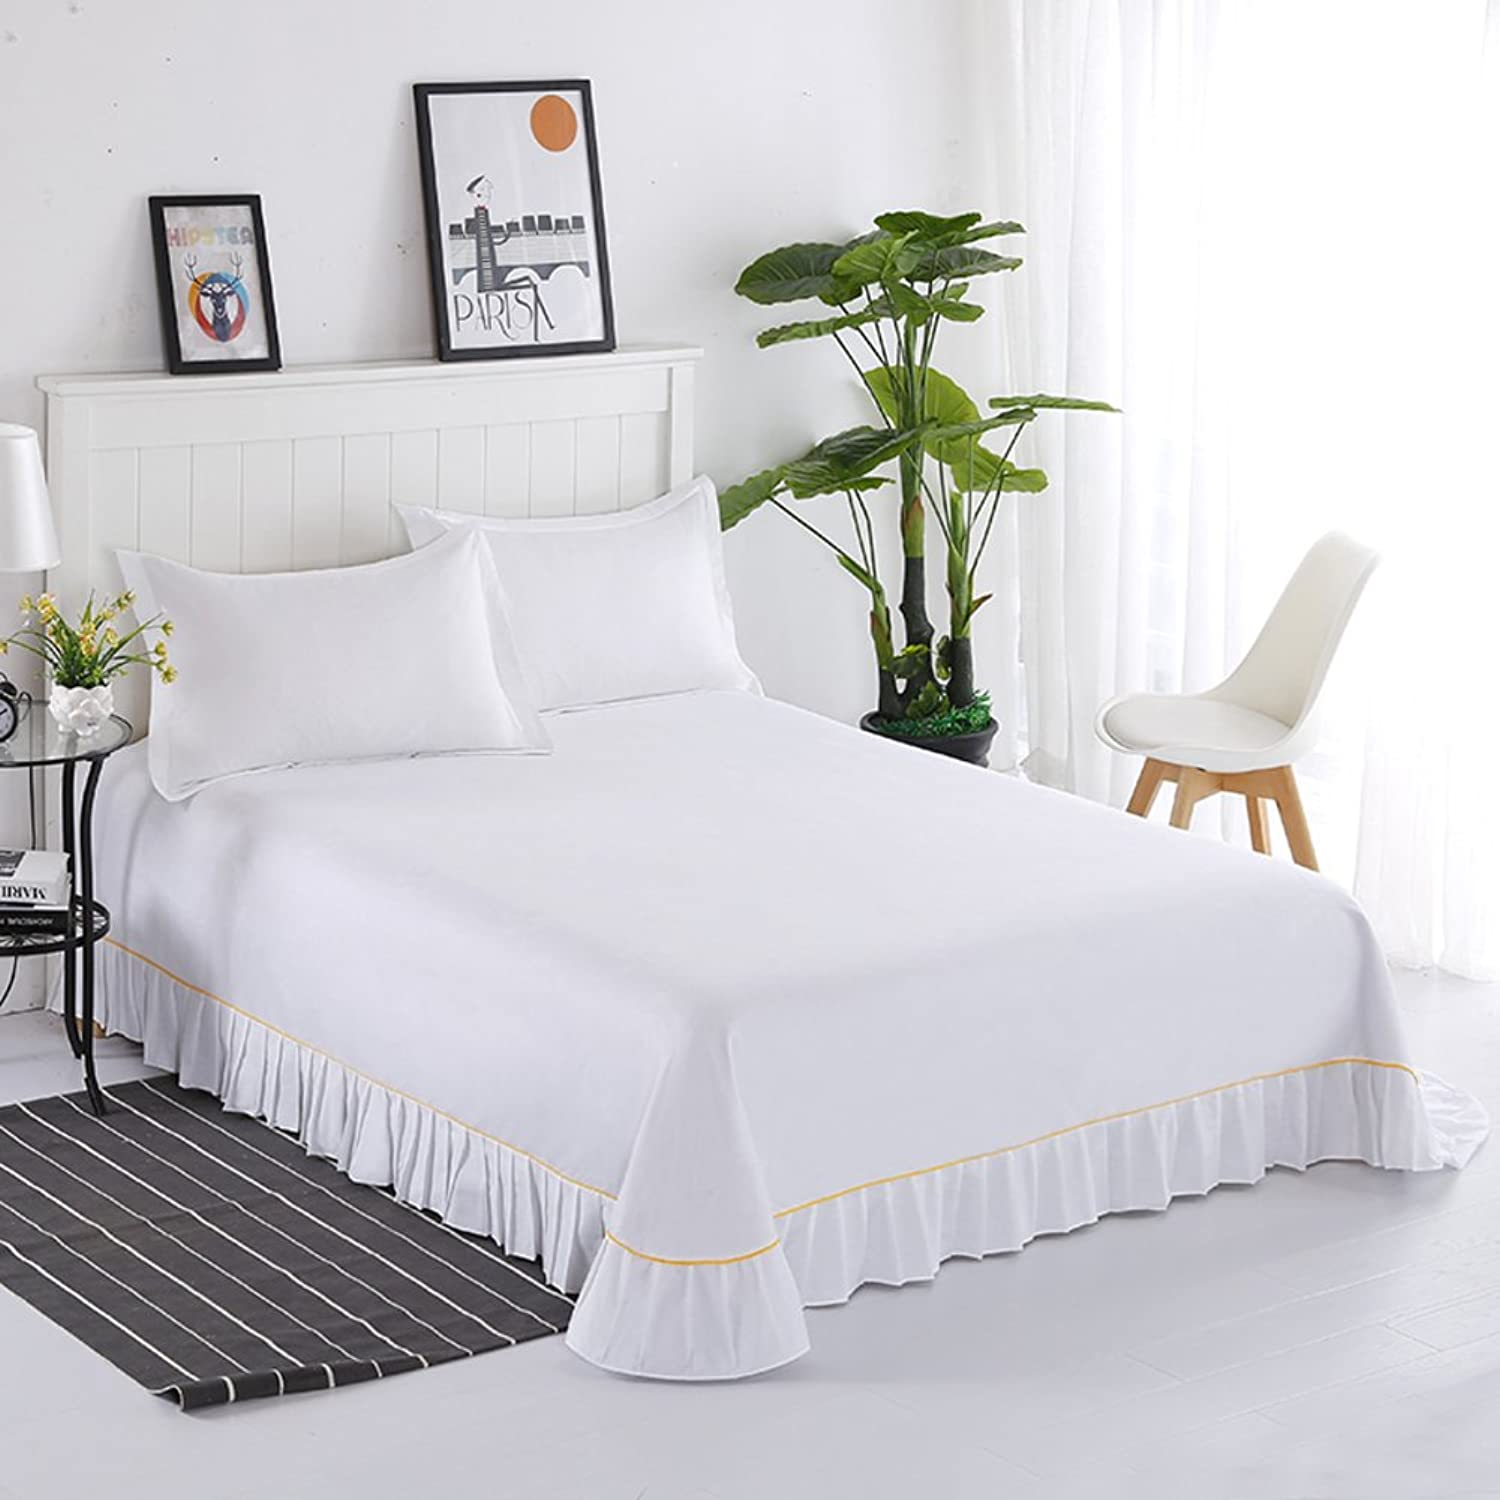 Full Cotton Flat Sheet, Top Sheets Ruffled Simple Princess Wind Stain Resistant Hypoallergenic Solid color Bed Sheet-White W200xH250cm(79x98inch)